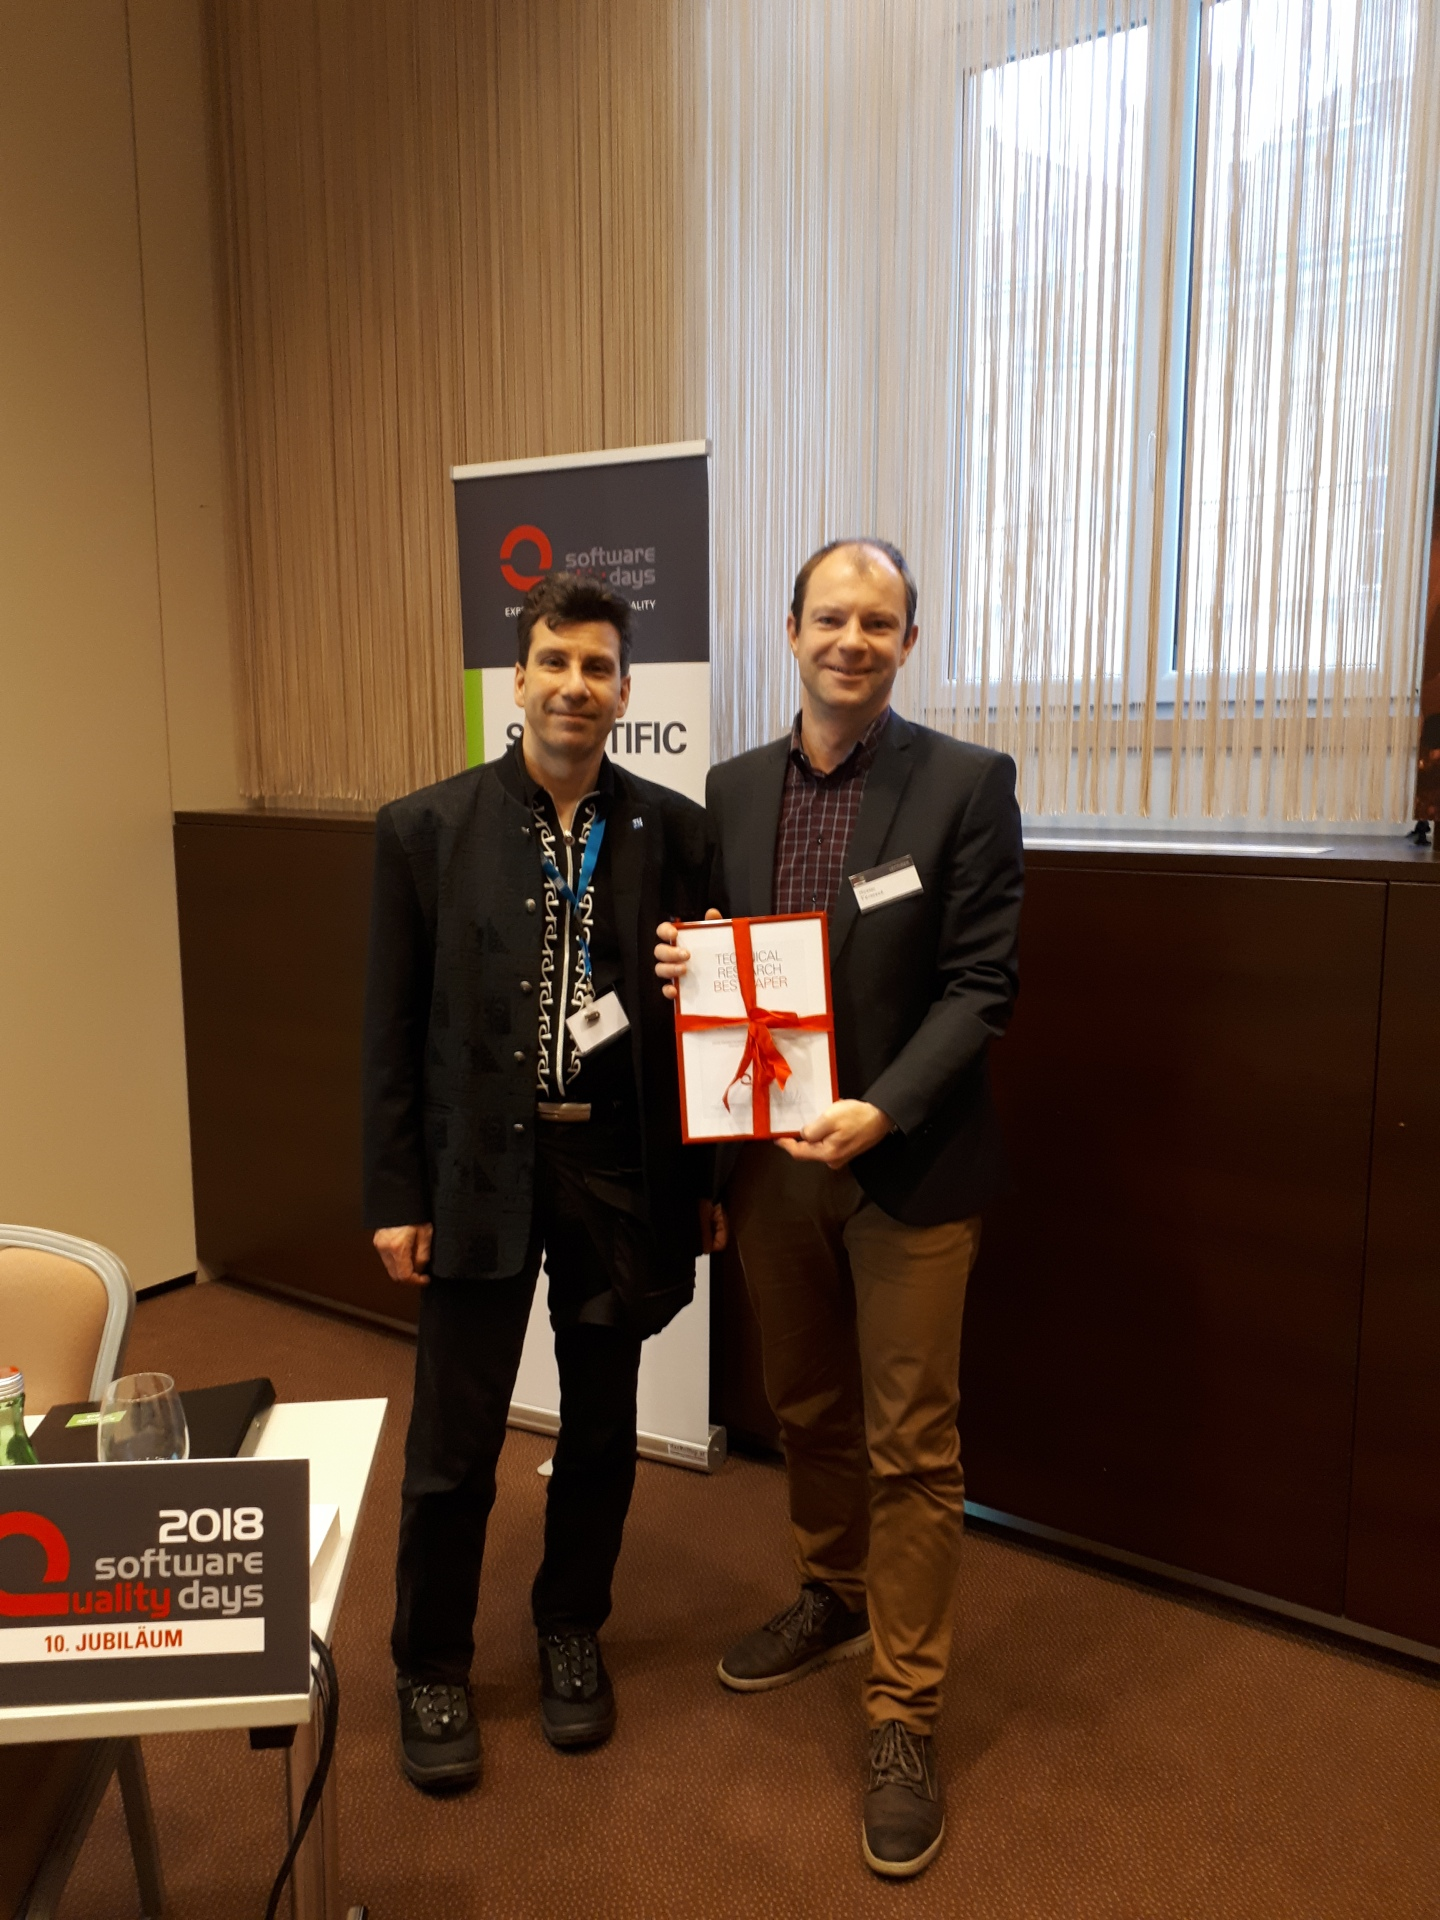 Best Paper Award at SWQD 2018